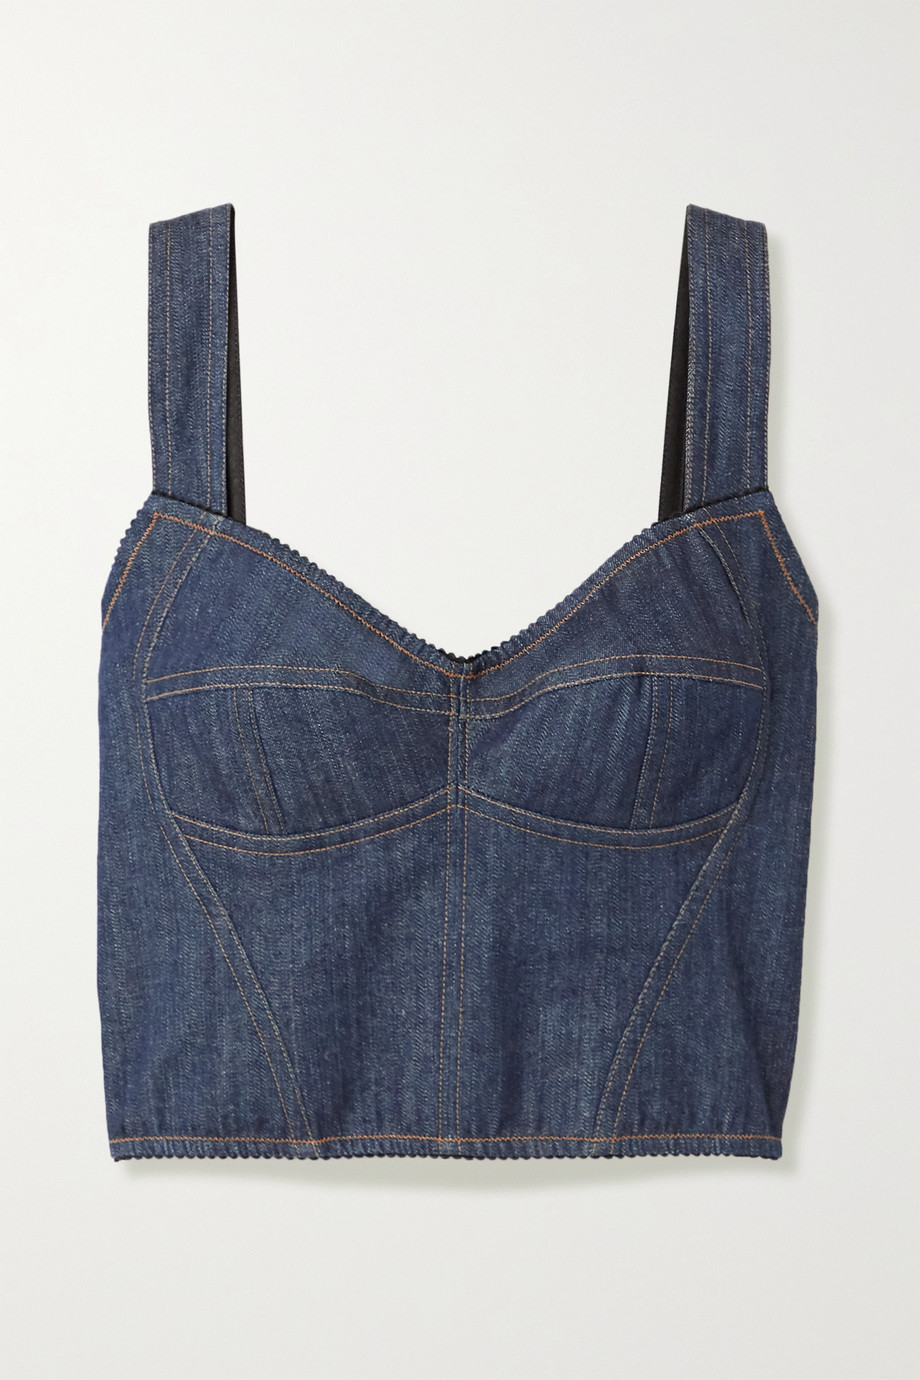 Dolce & Gabbana Stretch-denim and mesh bustier top